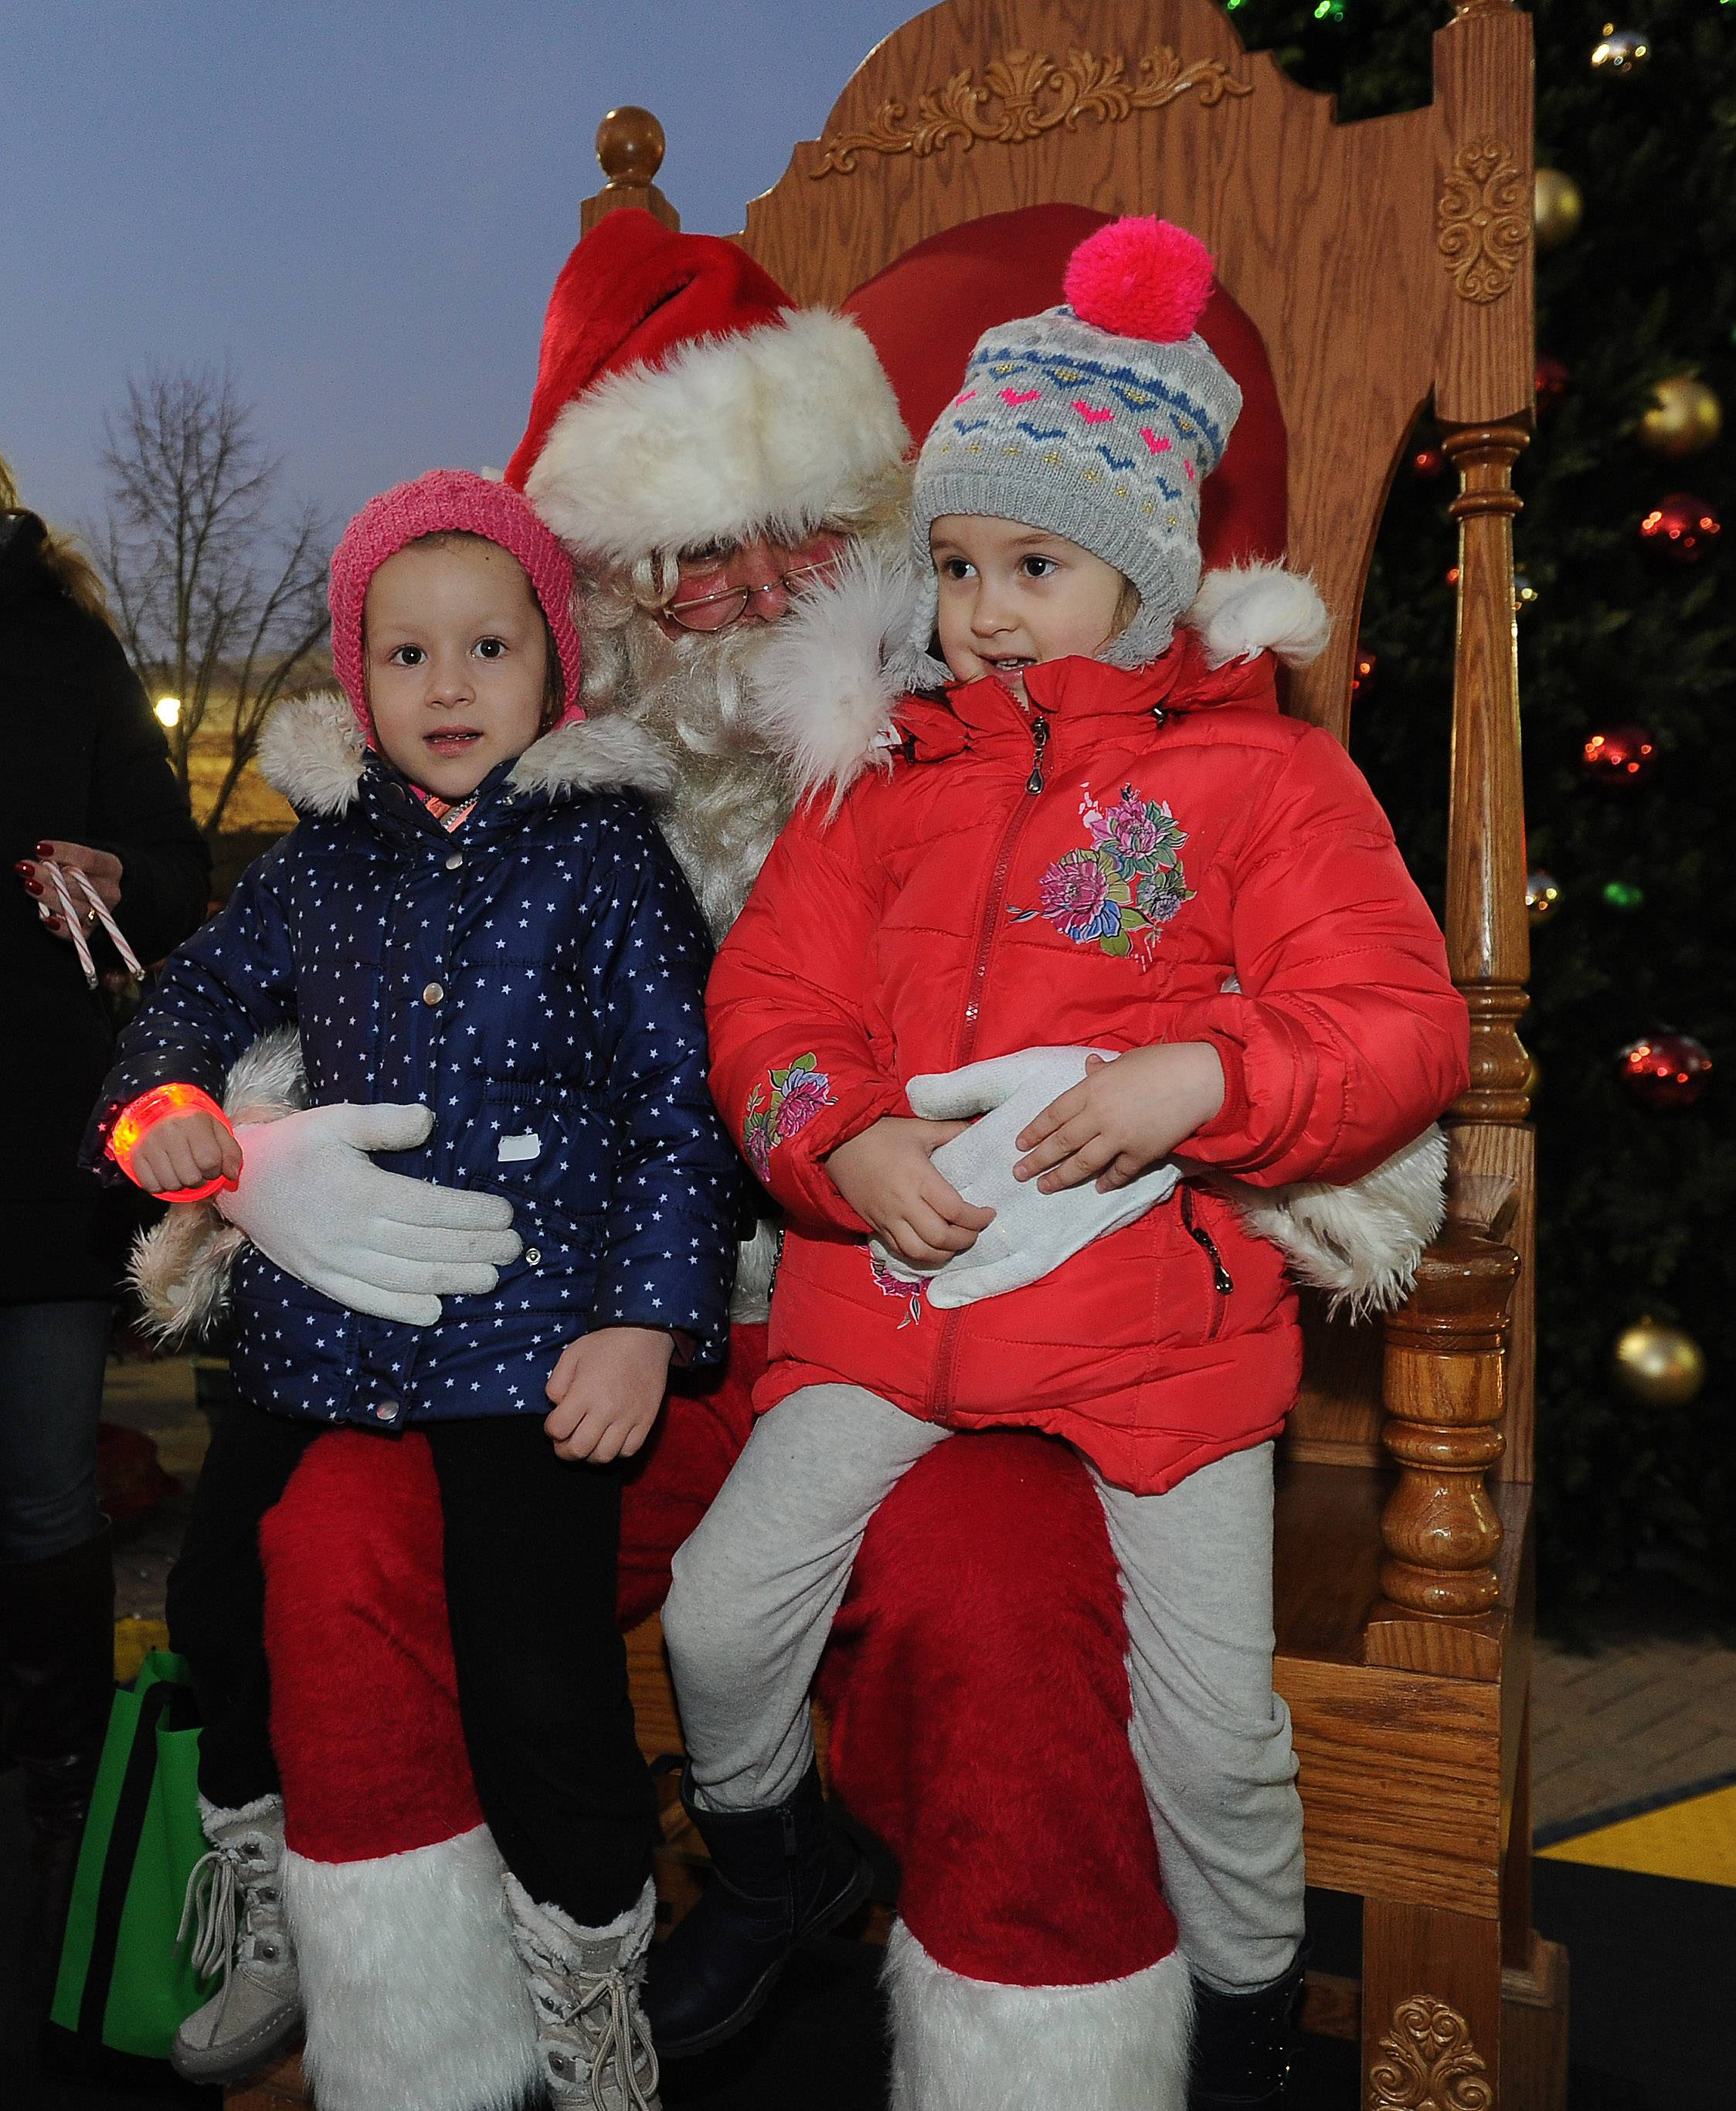 Rebecca Bogilbea, left, and Delia Balanuta, both 4 and from Des Plaines, tell Santa their Christmas wishes Friday night at Des Plaines' annual tree-lighting ceremony in Metropolitan Square.